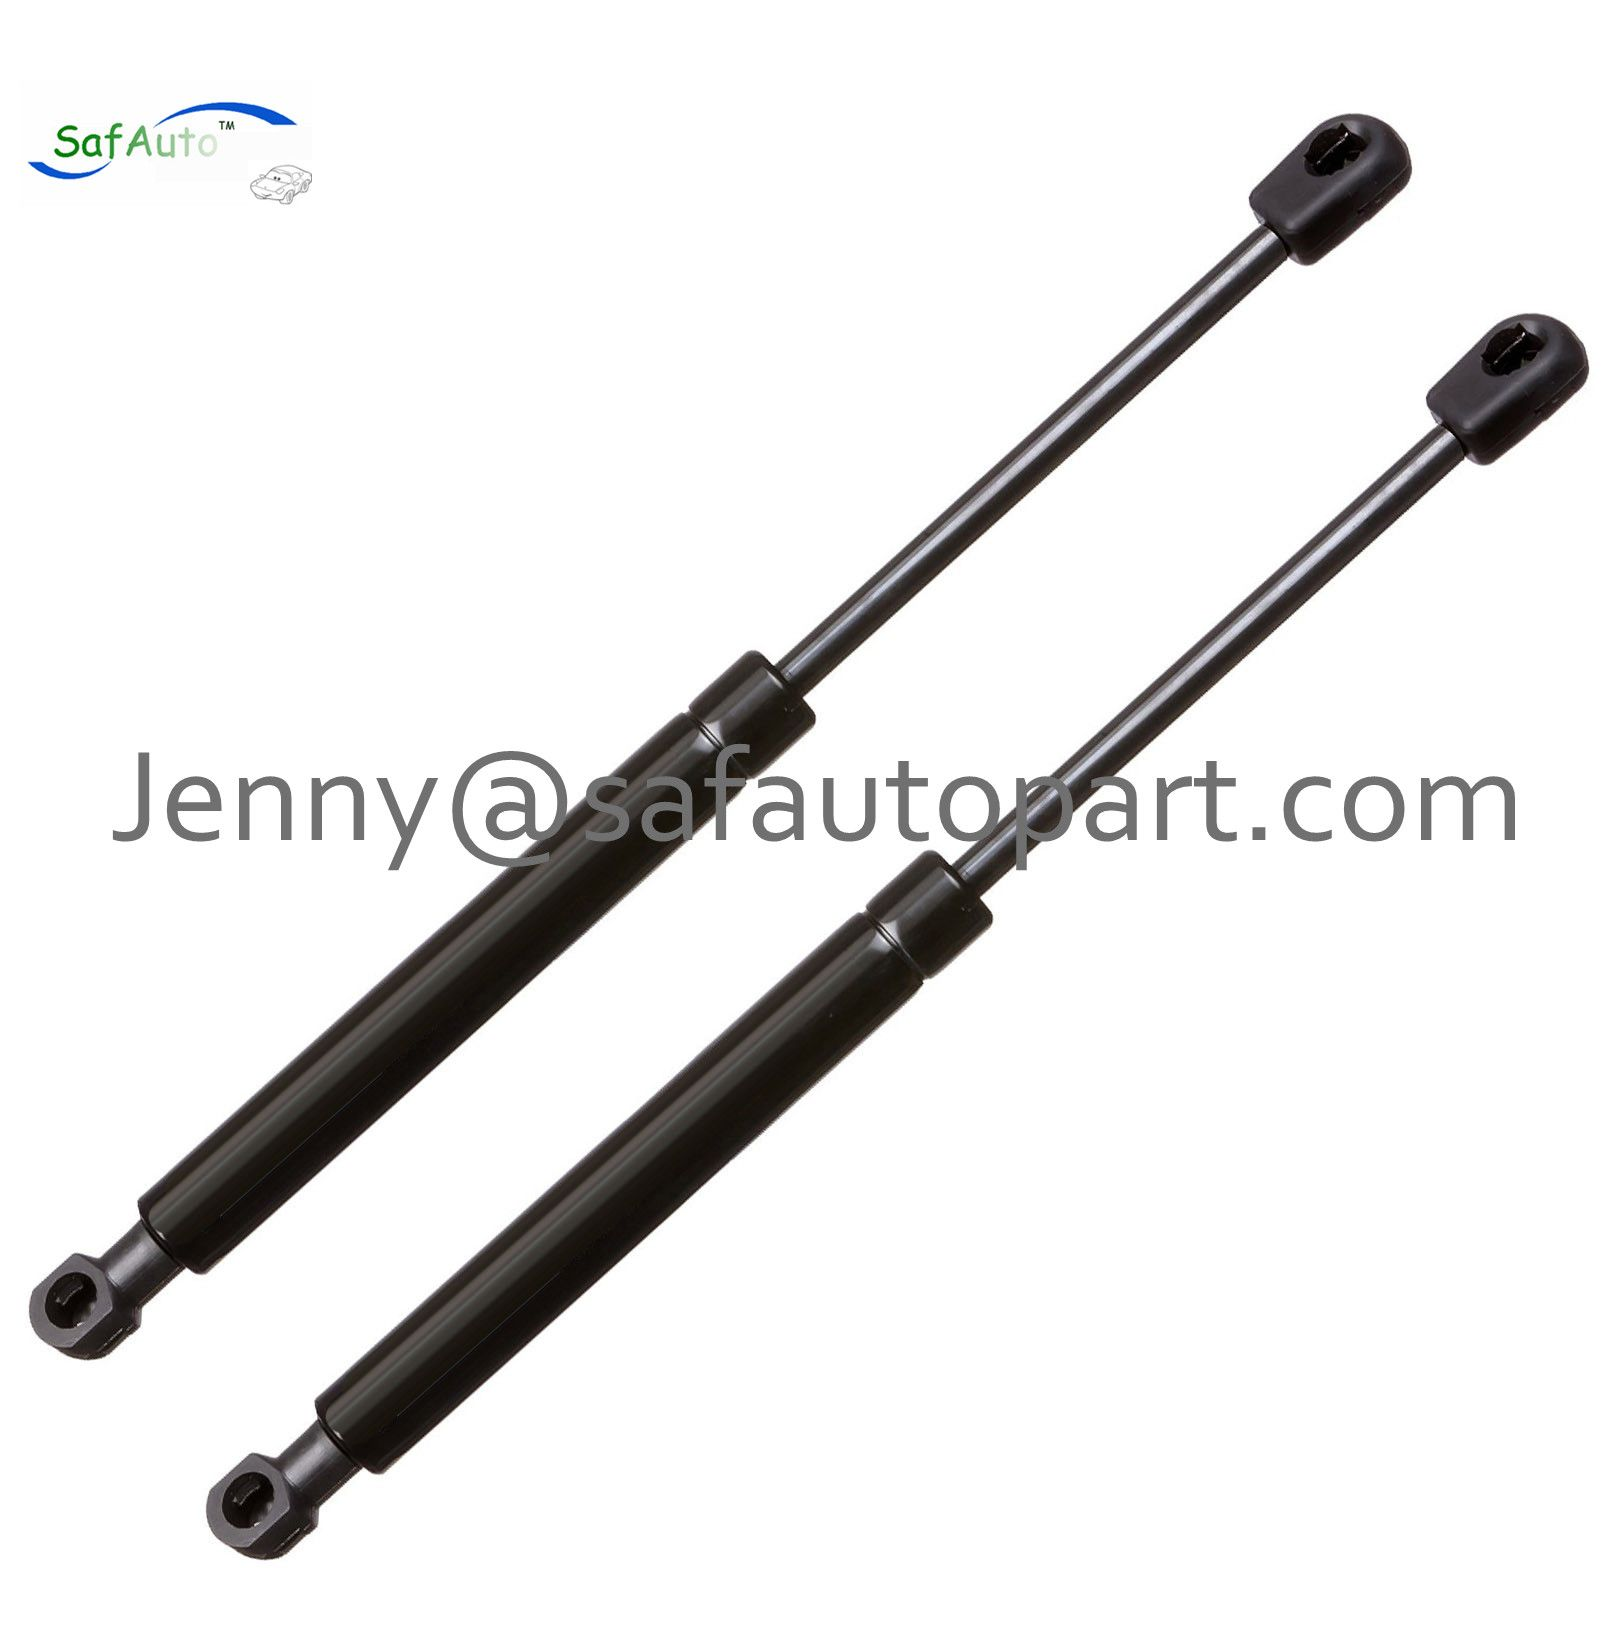 2pcs Front Hood Gas Charged Lift Support Sturt Shocks Spring Dampers for BMW X3 E83 2004-2010 51233400352